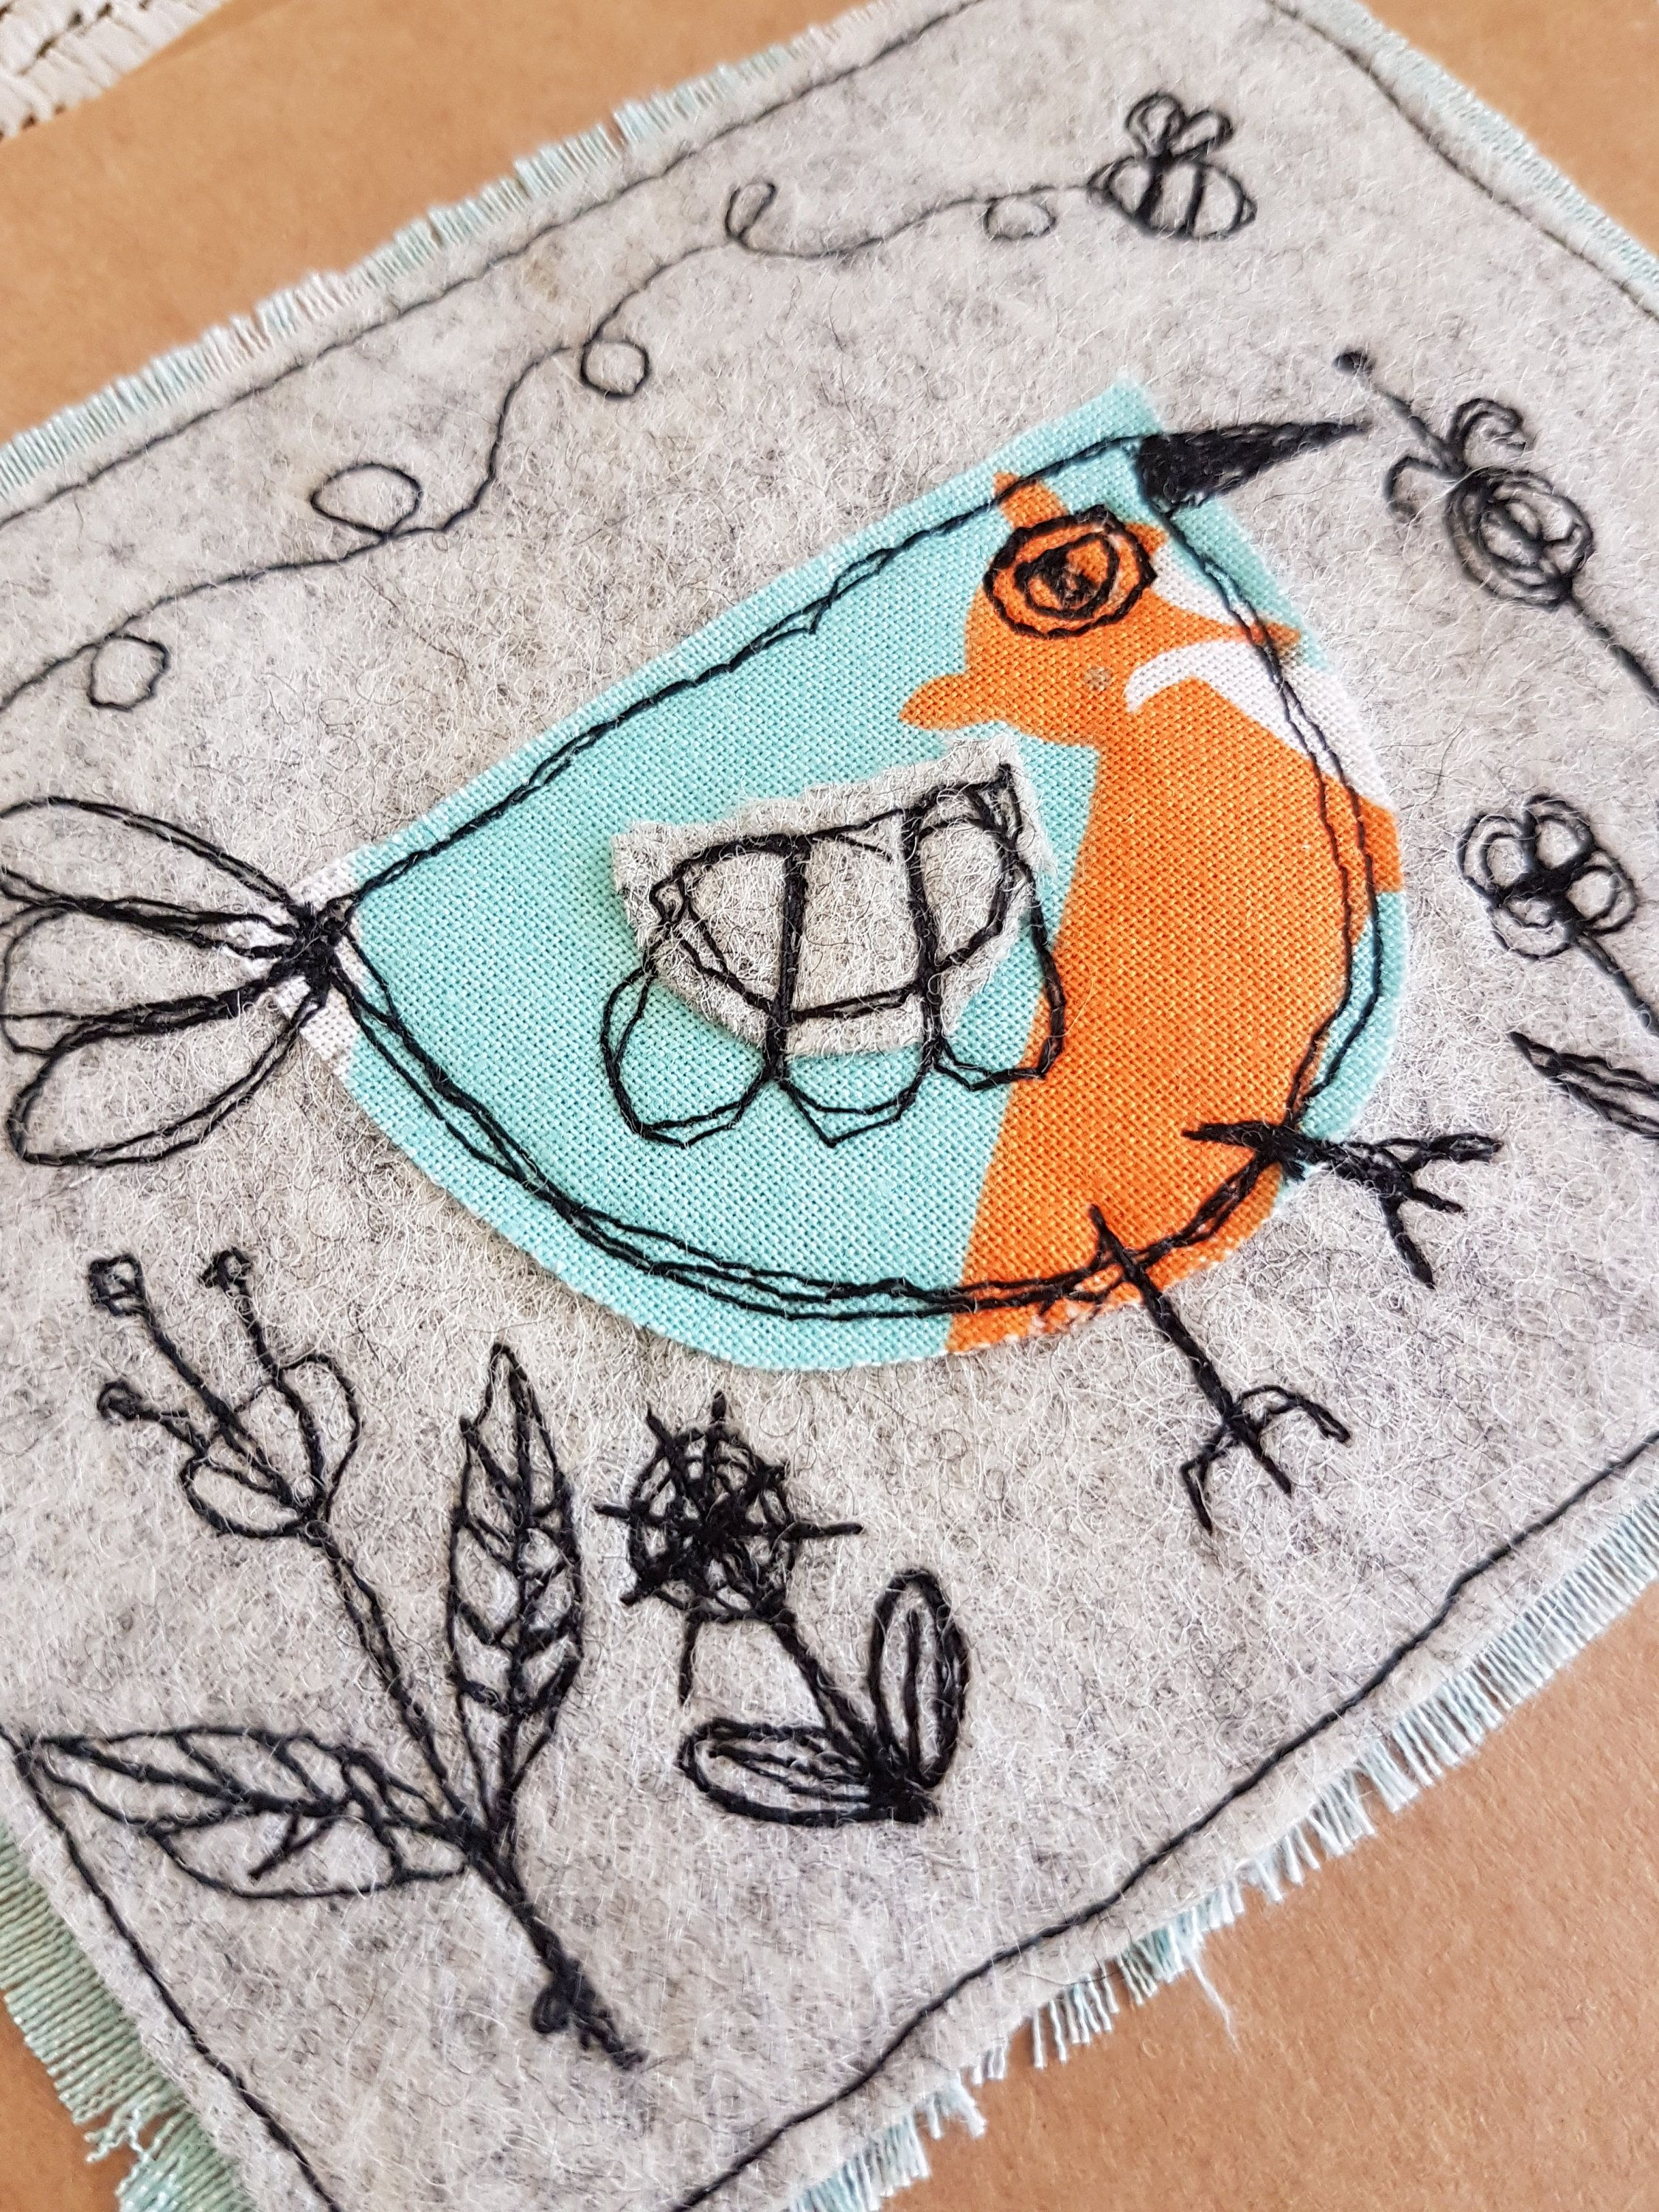 Whats that birdy funky free motion machine embroidery greetings whats that birdy funky free motion machine embroidery greetings card birthday card applique textiles daughter girlfriend wife mum sister kristyandbryce Image collections